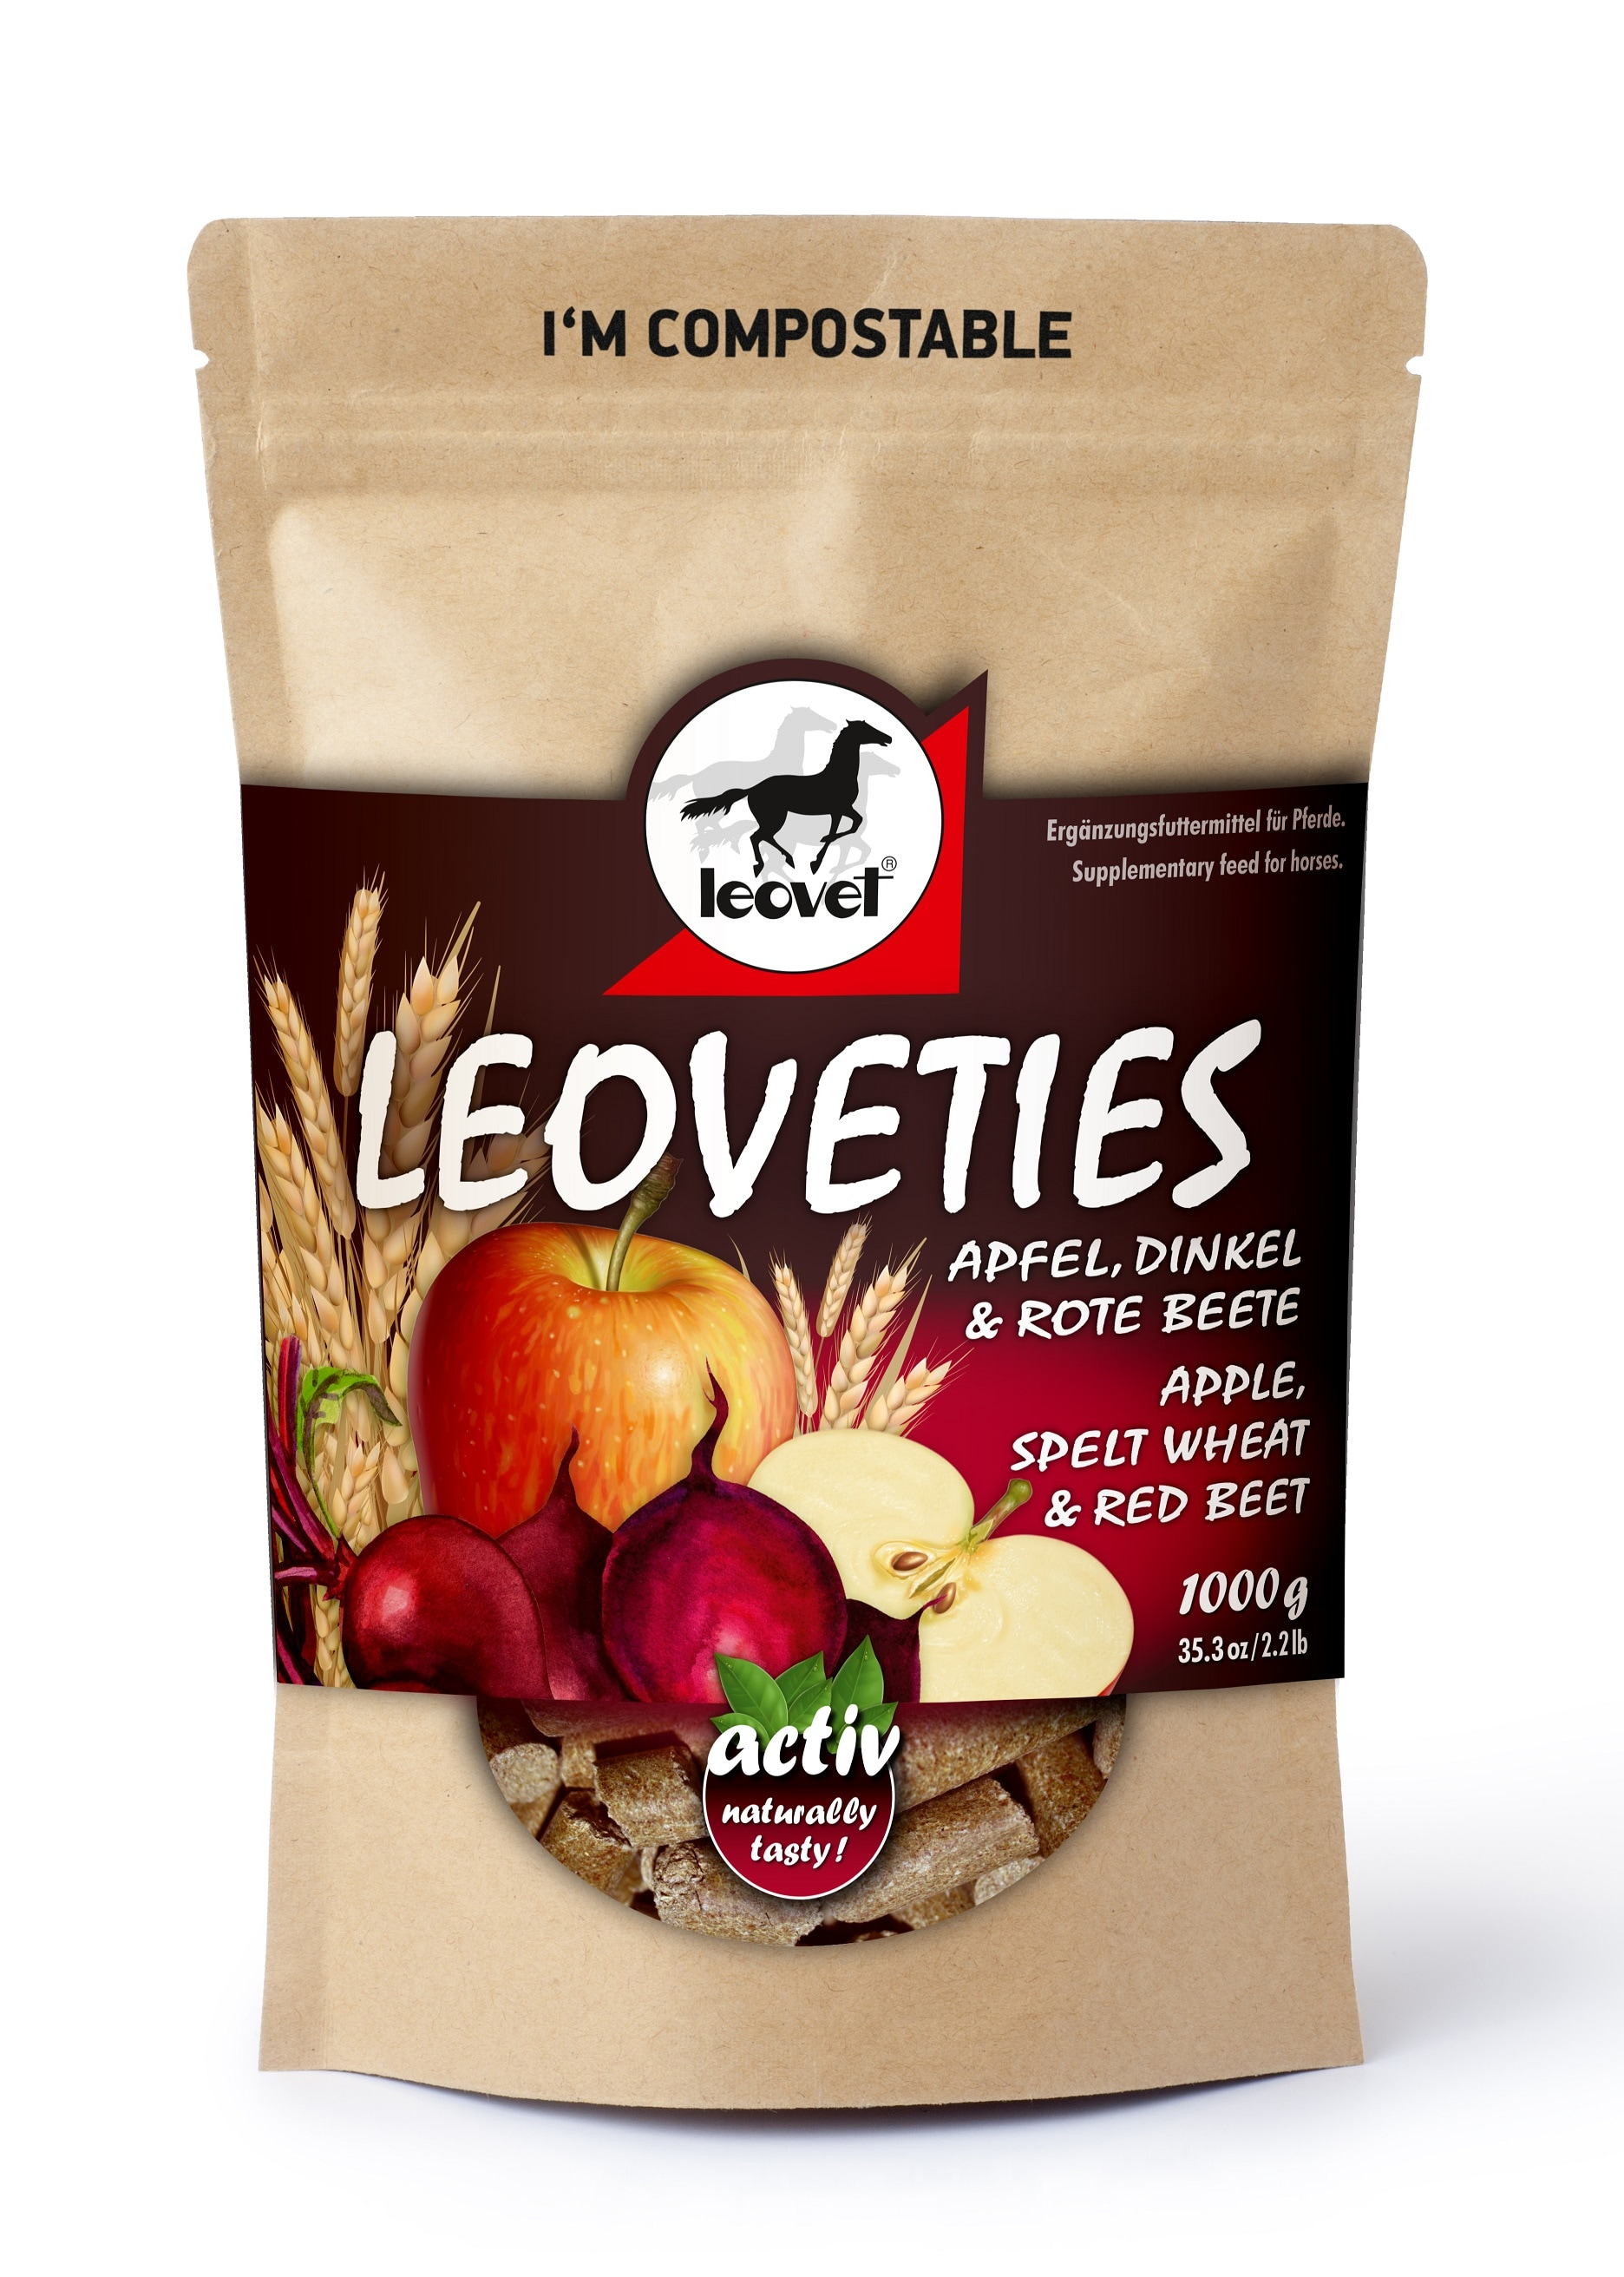 leoveties-apple-speal-wheat-red-beets